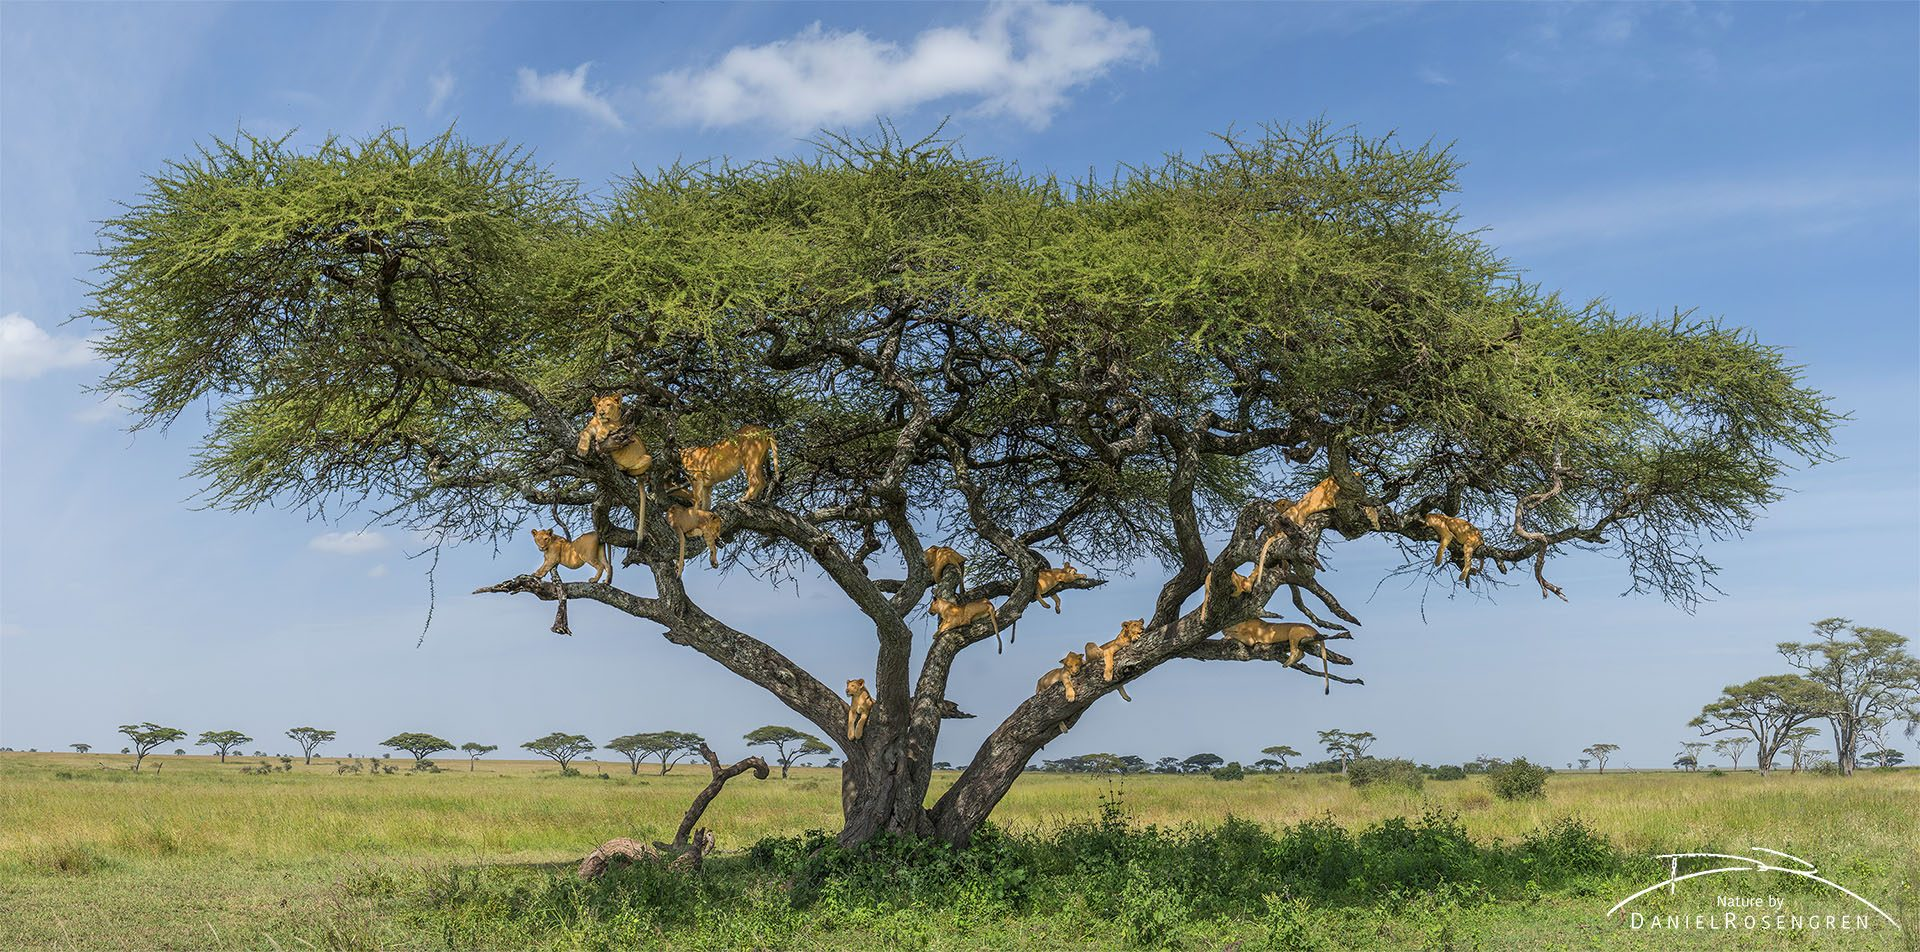 16 lions in an Acacia tree, this photo has been stitched together from four individual photos. © Daniel Rosengren